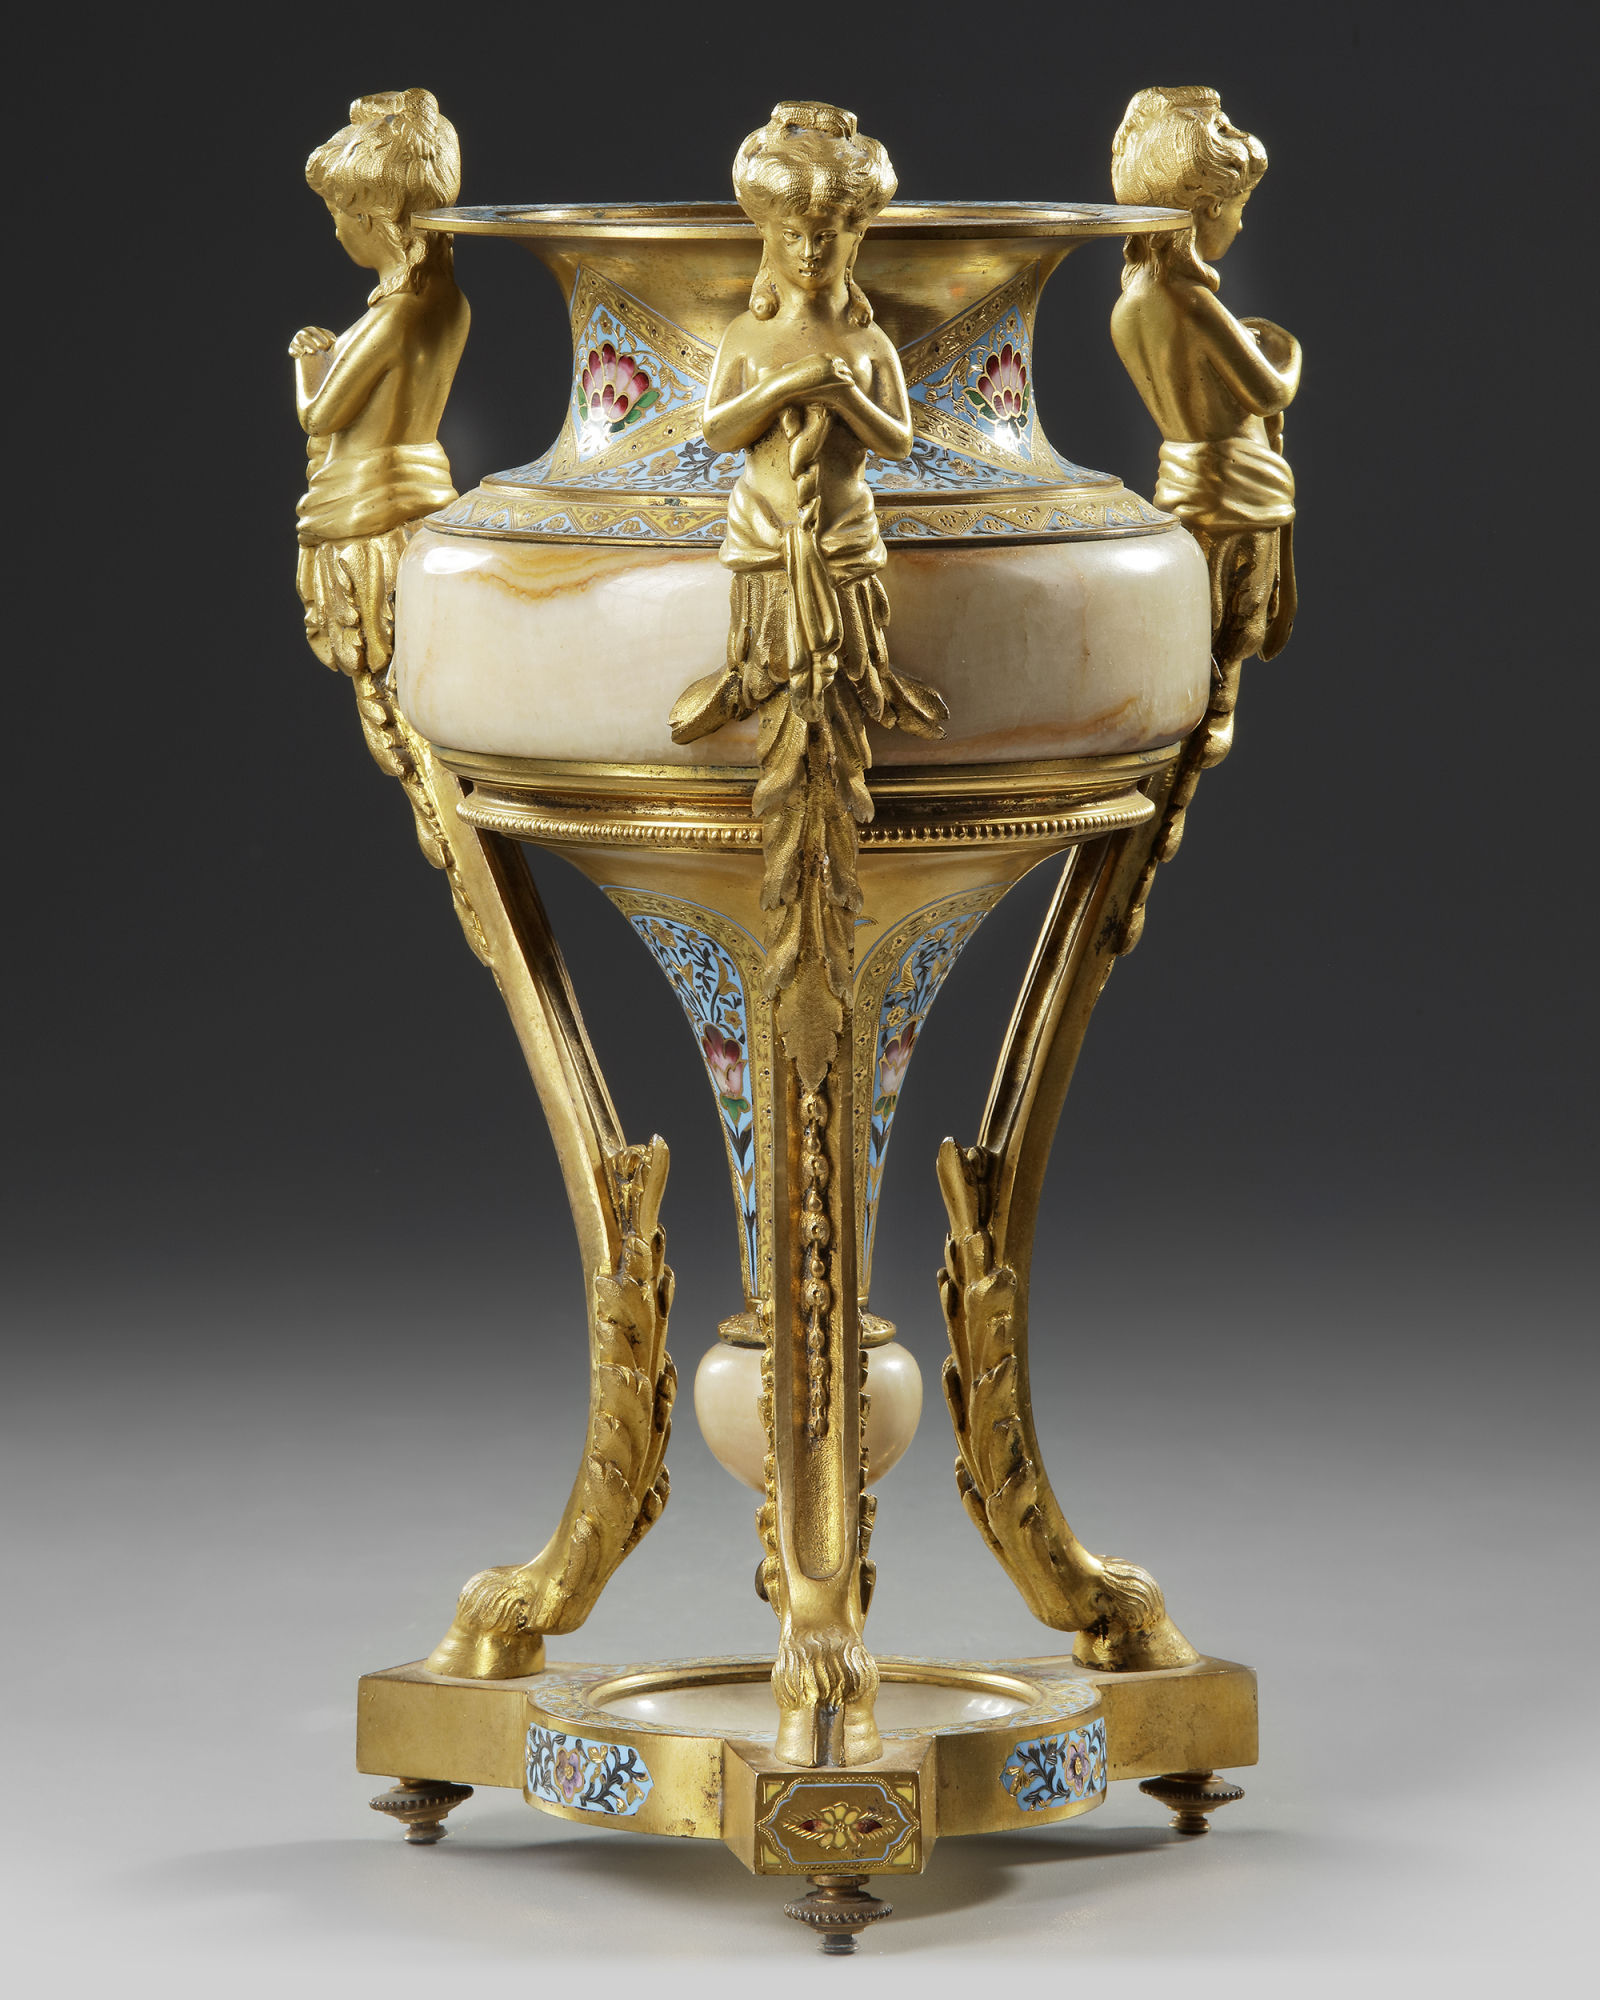 A BRONZE STANDING CUP, 19TH CENTURY - Image 2 of 3